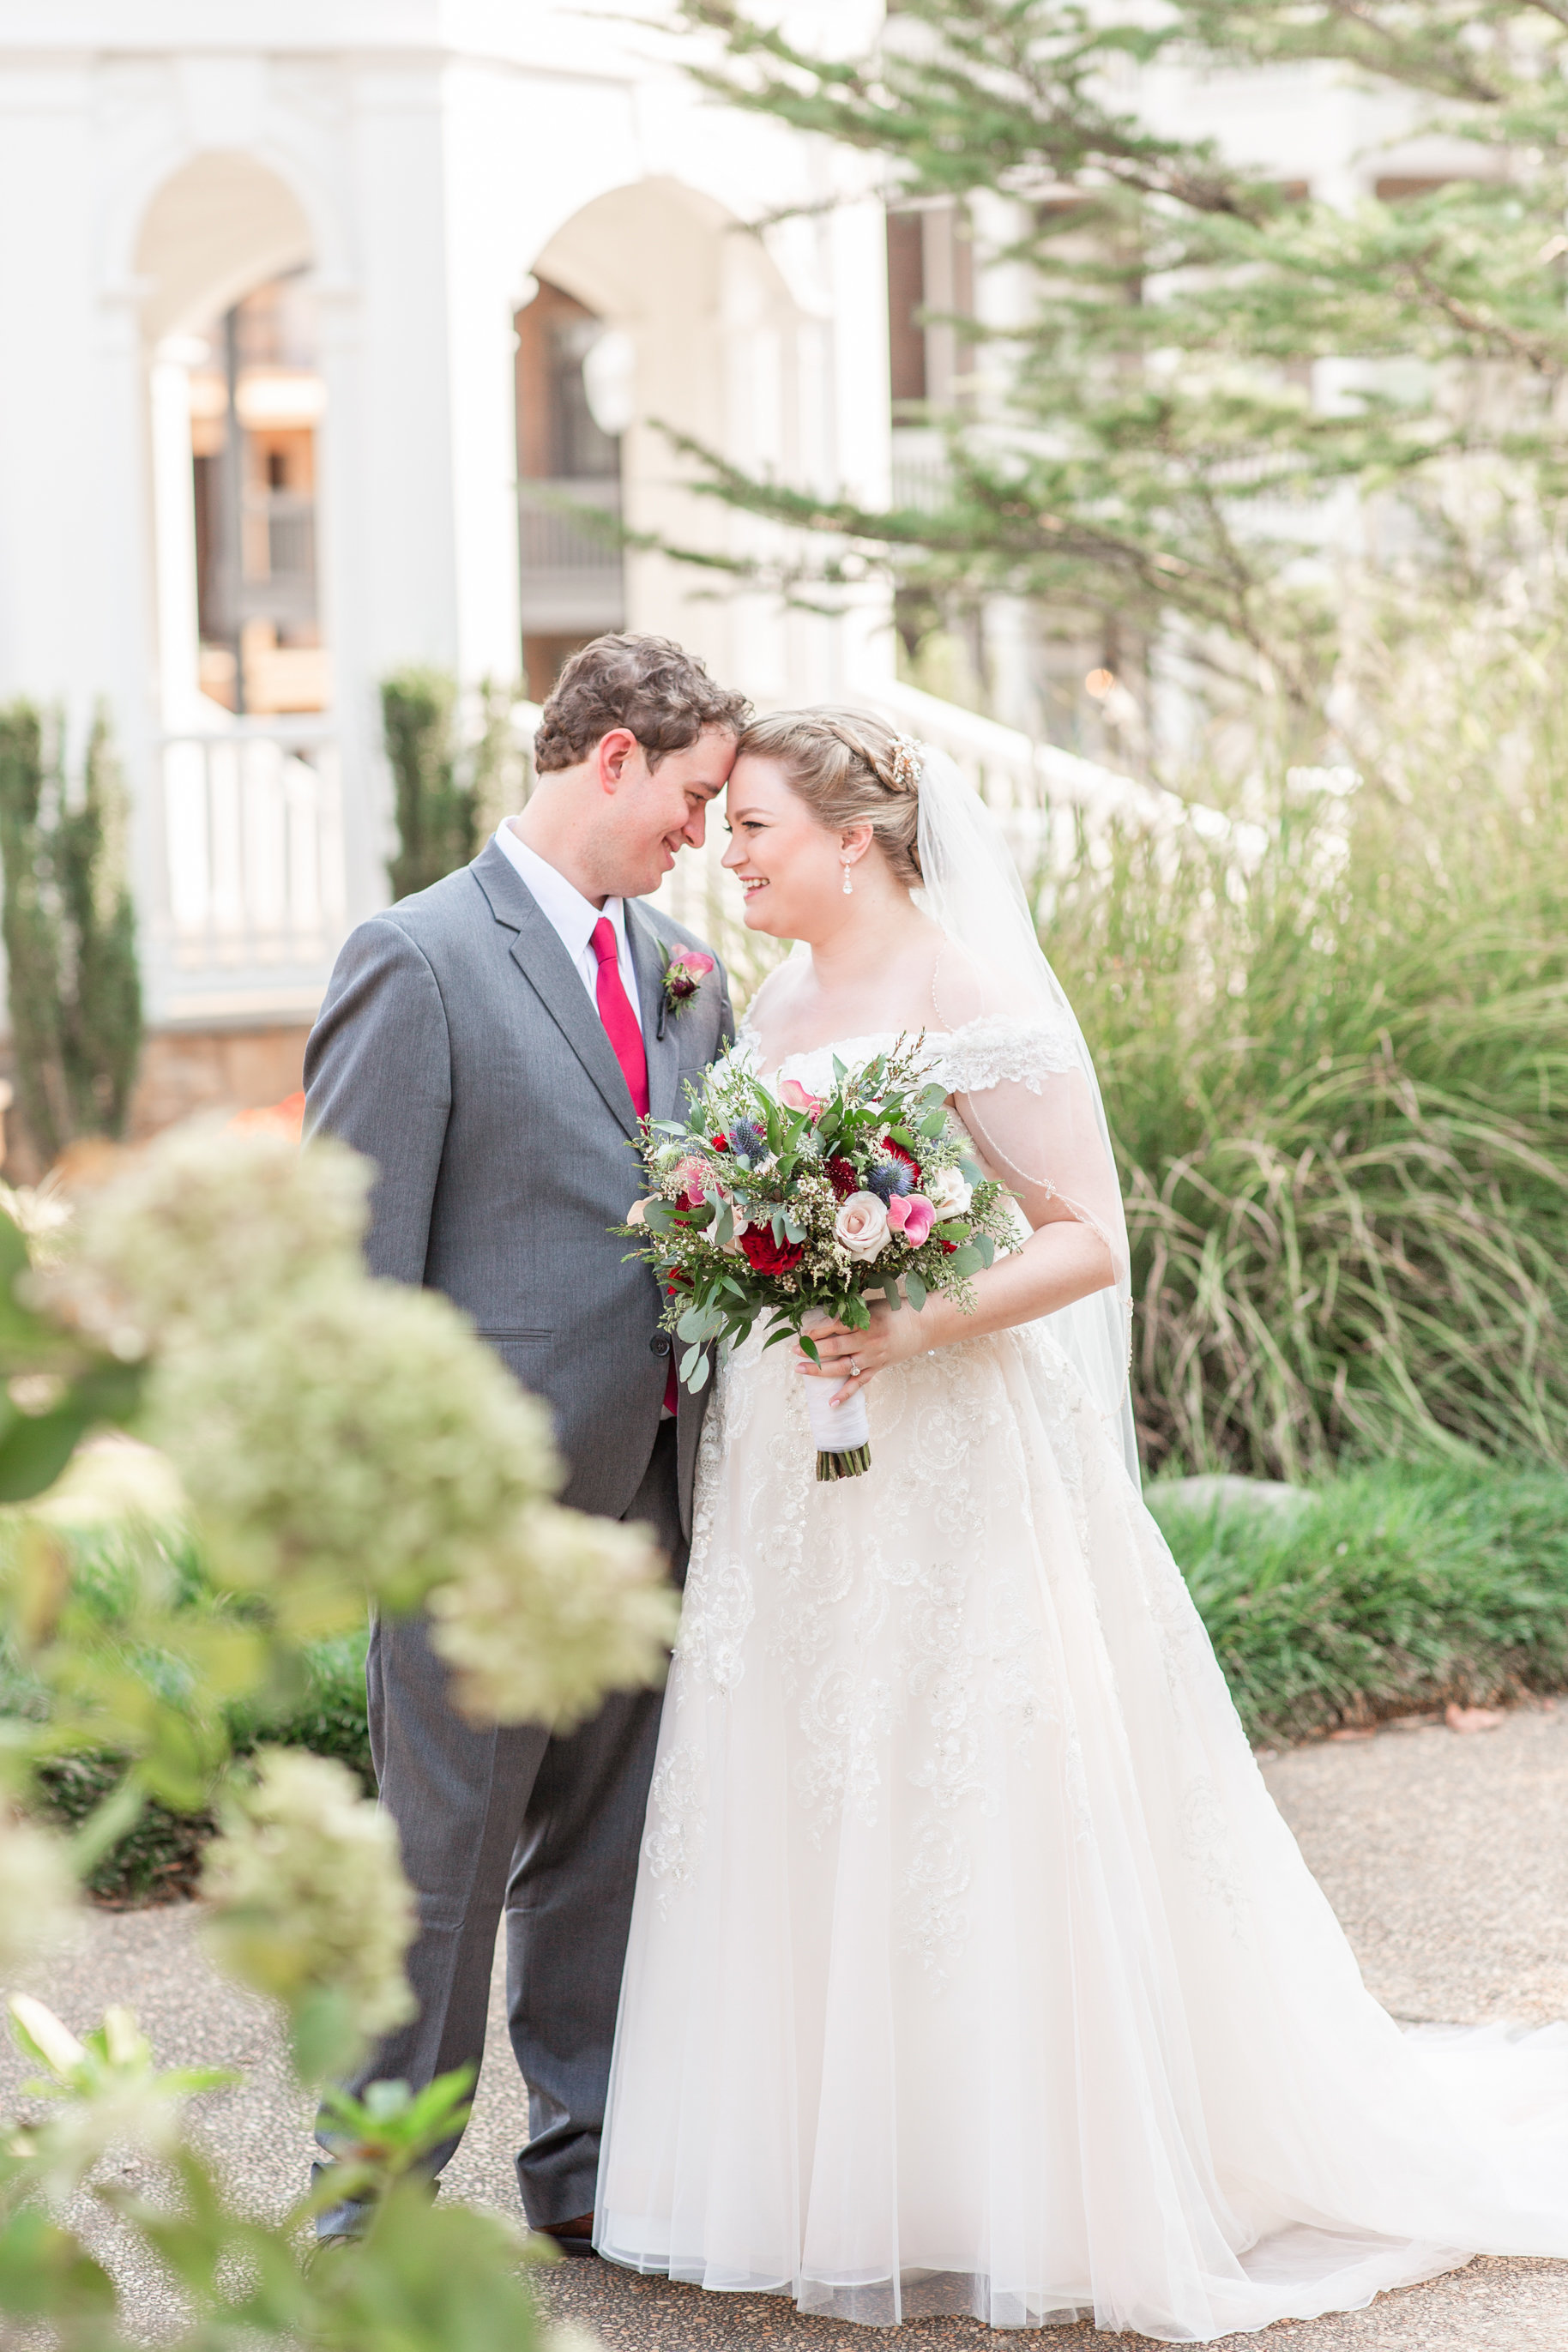 Lauren+Max_Wedding-244